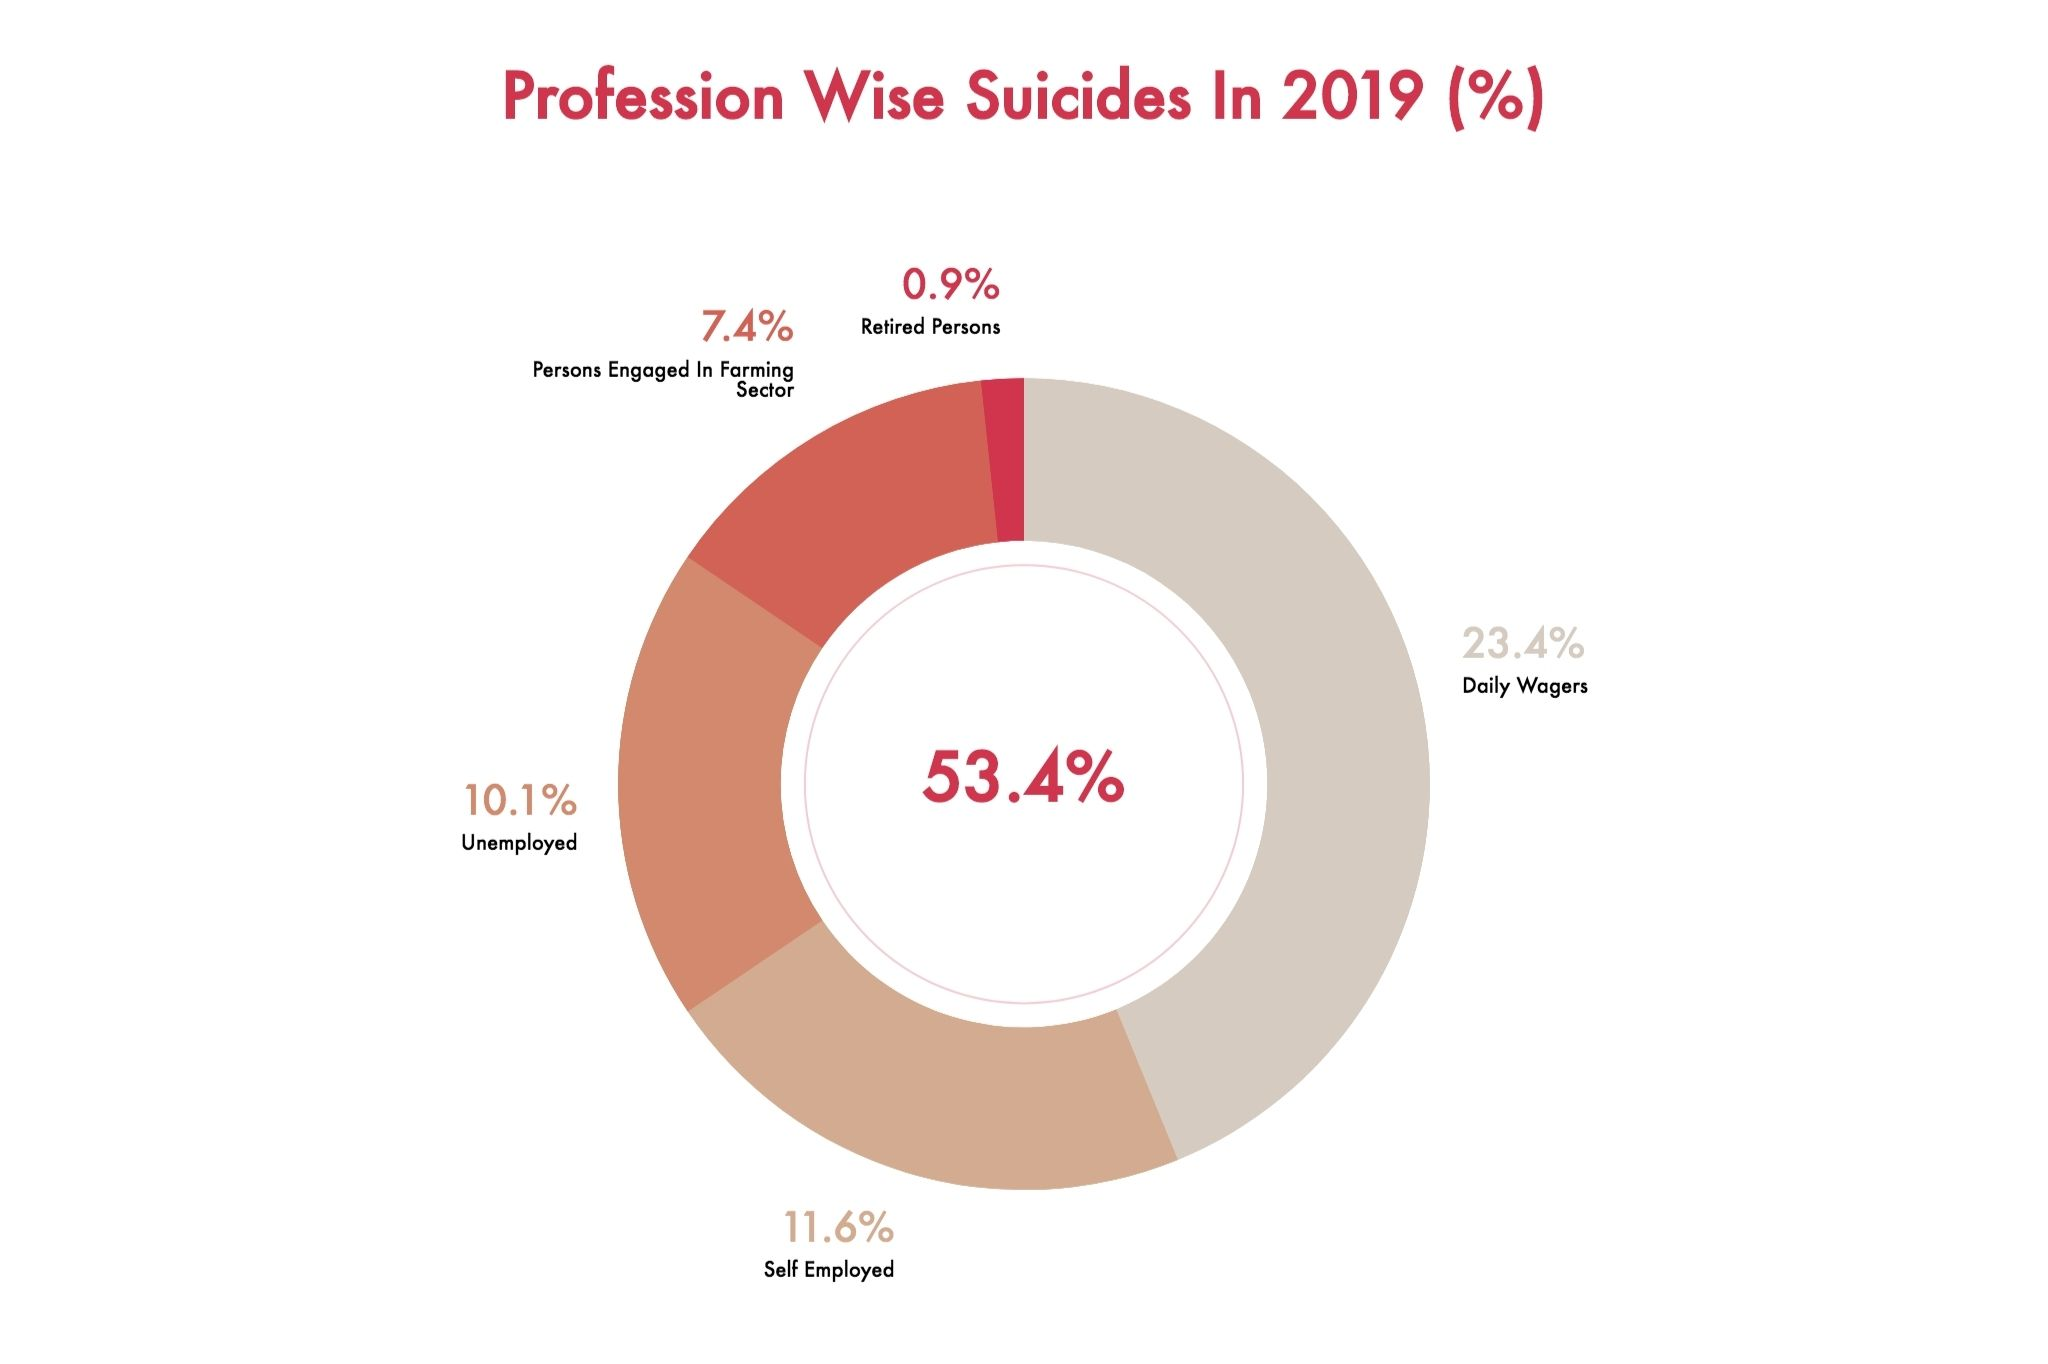 Profession wise suicides in 2019